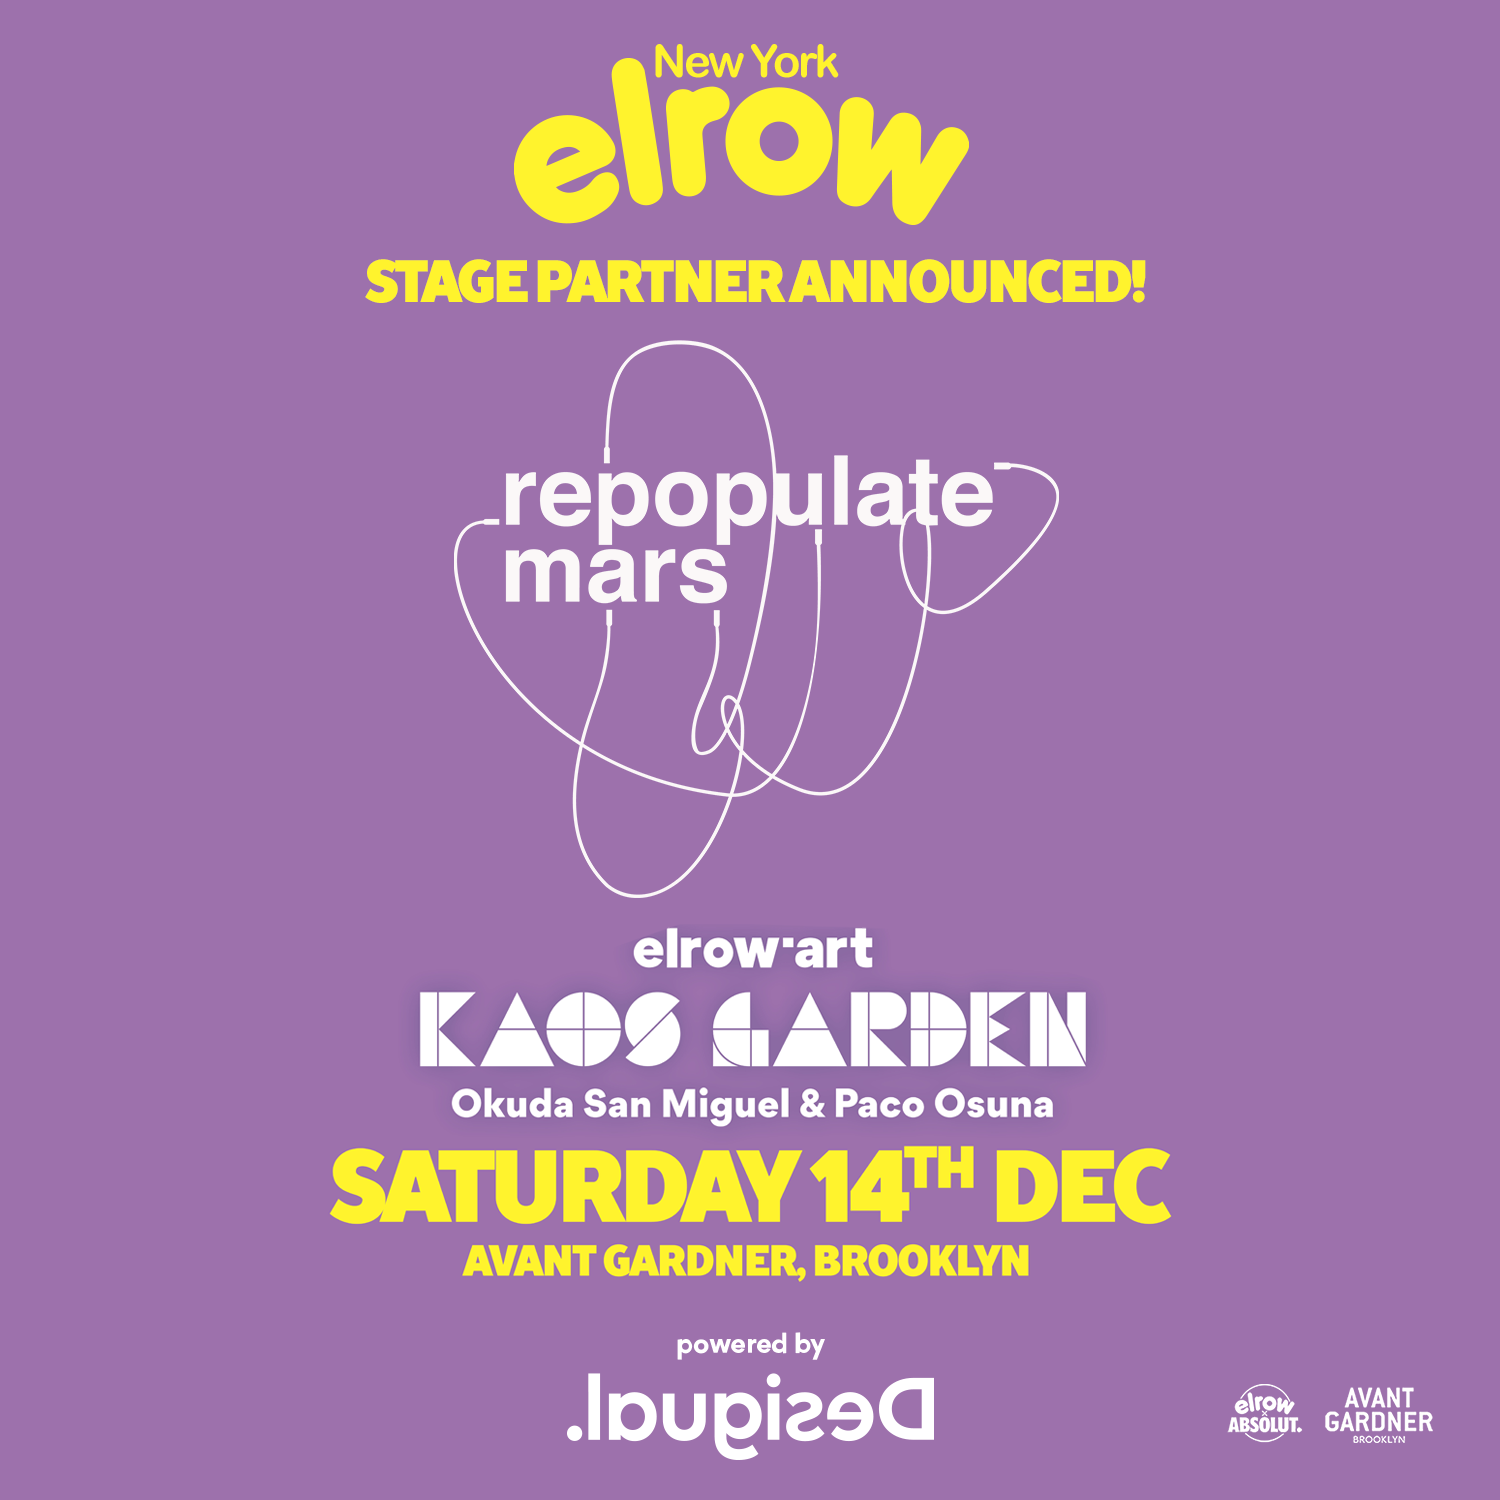 Tickets - Repopulate Mars takes over Kings Hall at Avant Gardner for El Row New York! Details and Lineup TBA